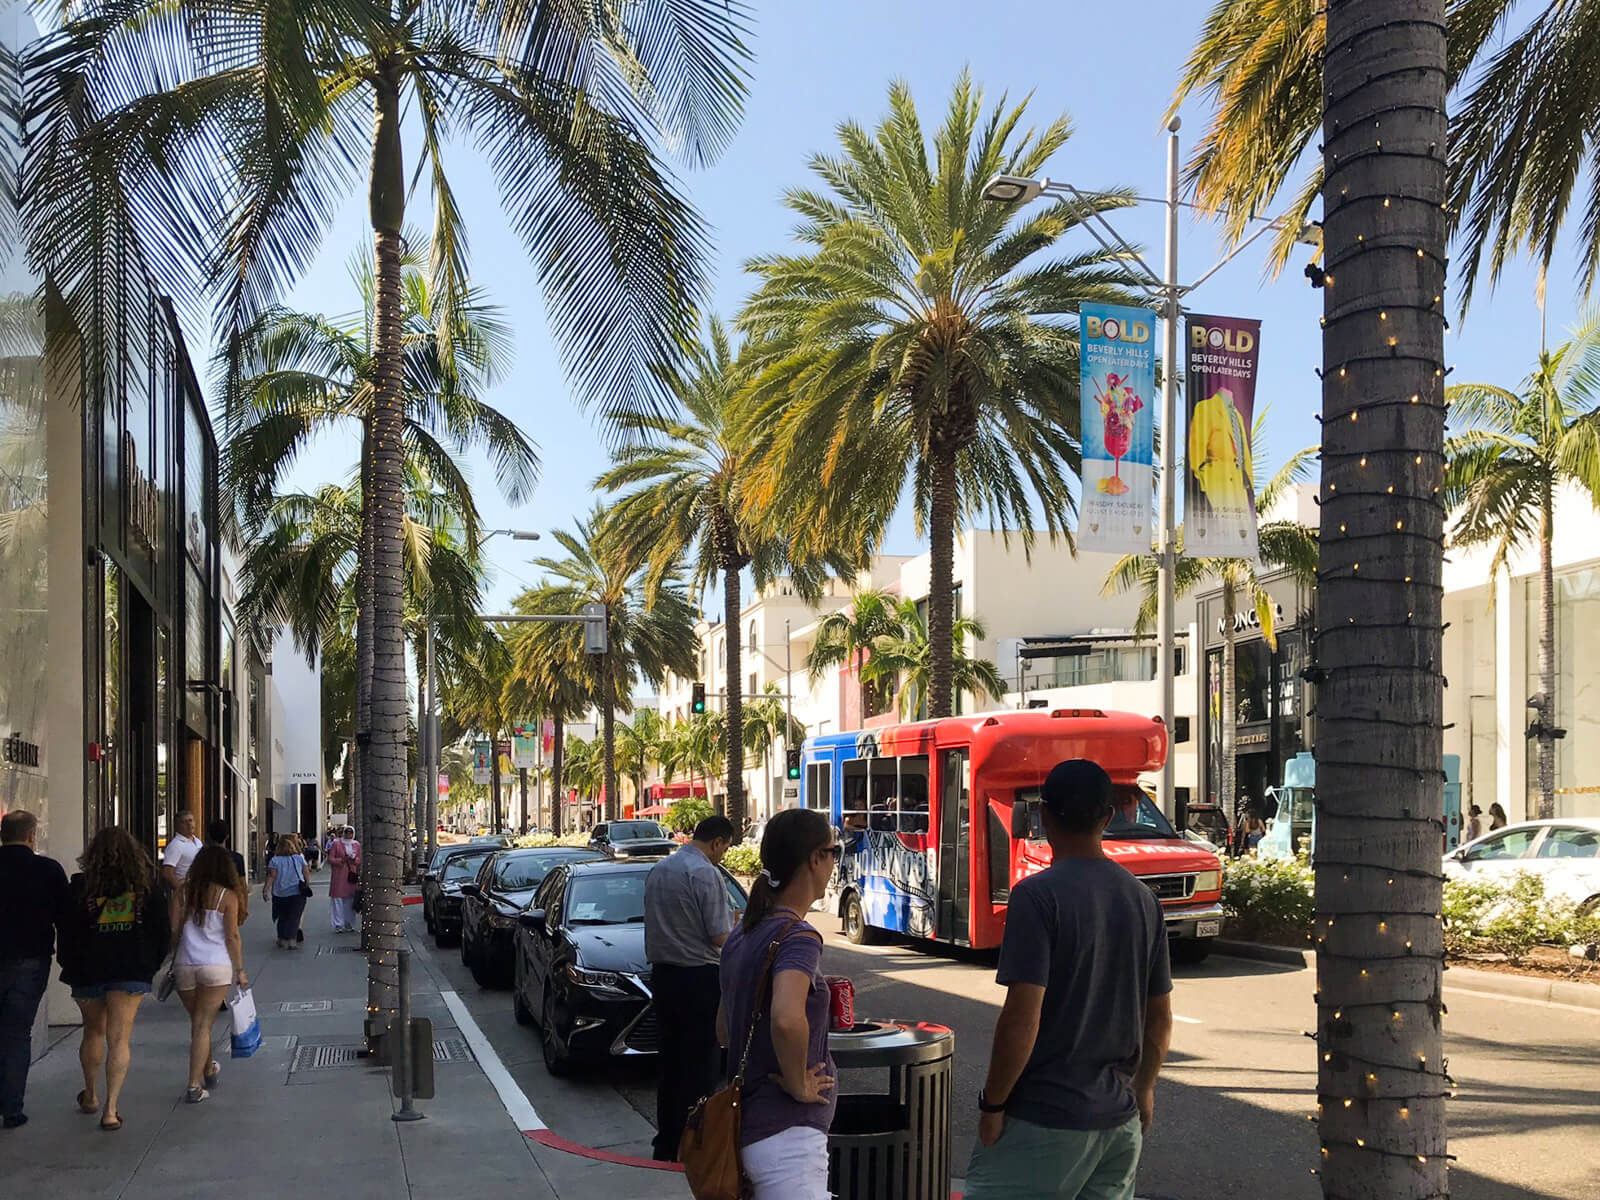 A street with palm trees down the side of the street. The tree trunks have fairy lights wrapped around them. There are cars parked down the side of the street and people walking on the sidewalk.